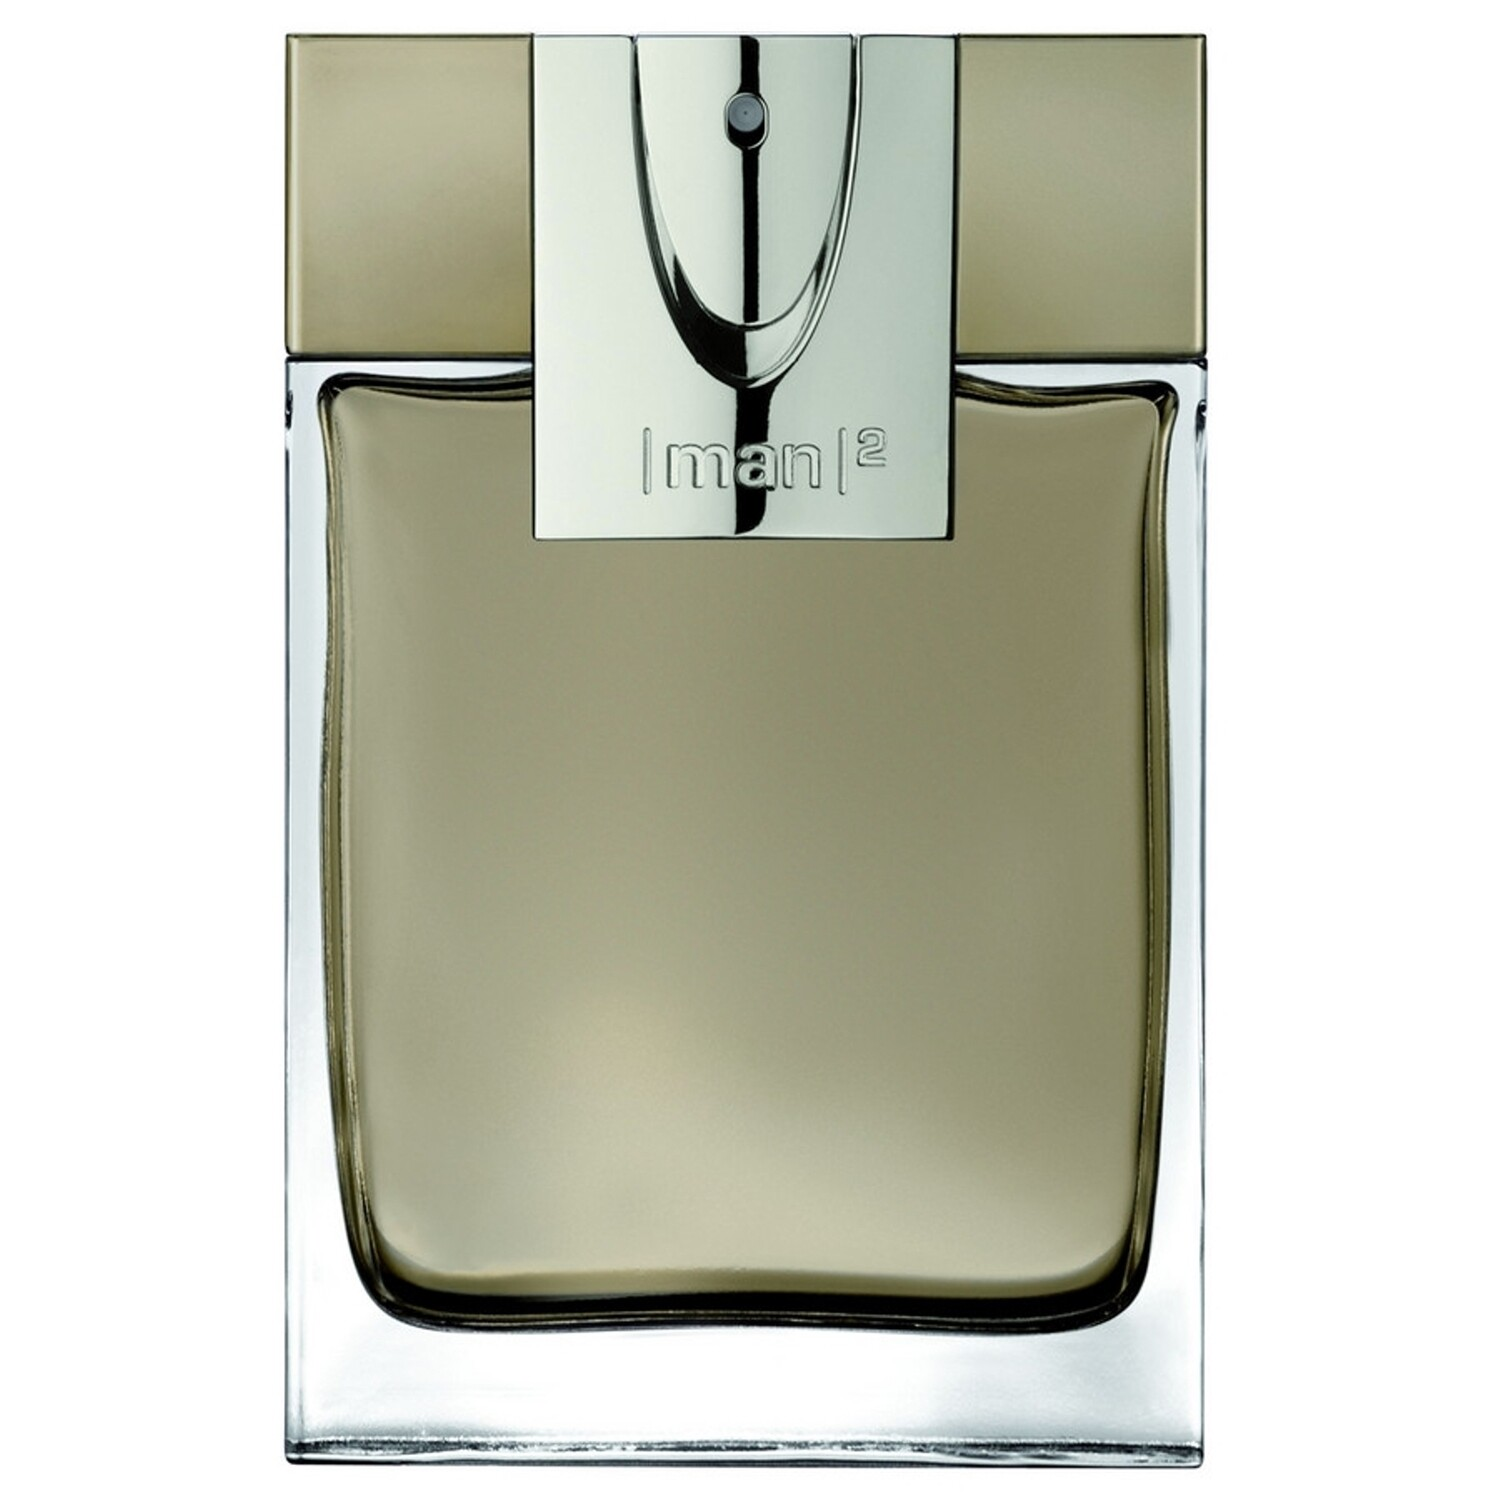 Aigner Man 2 Eau de Toilette 100ml